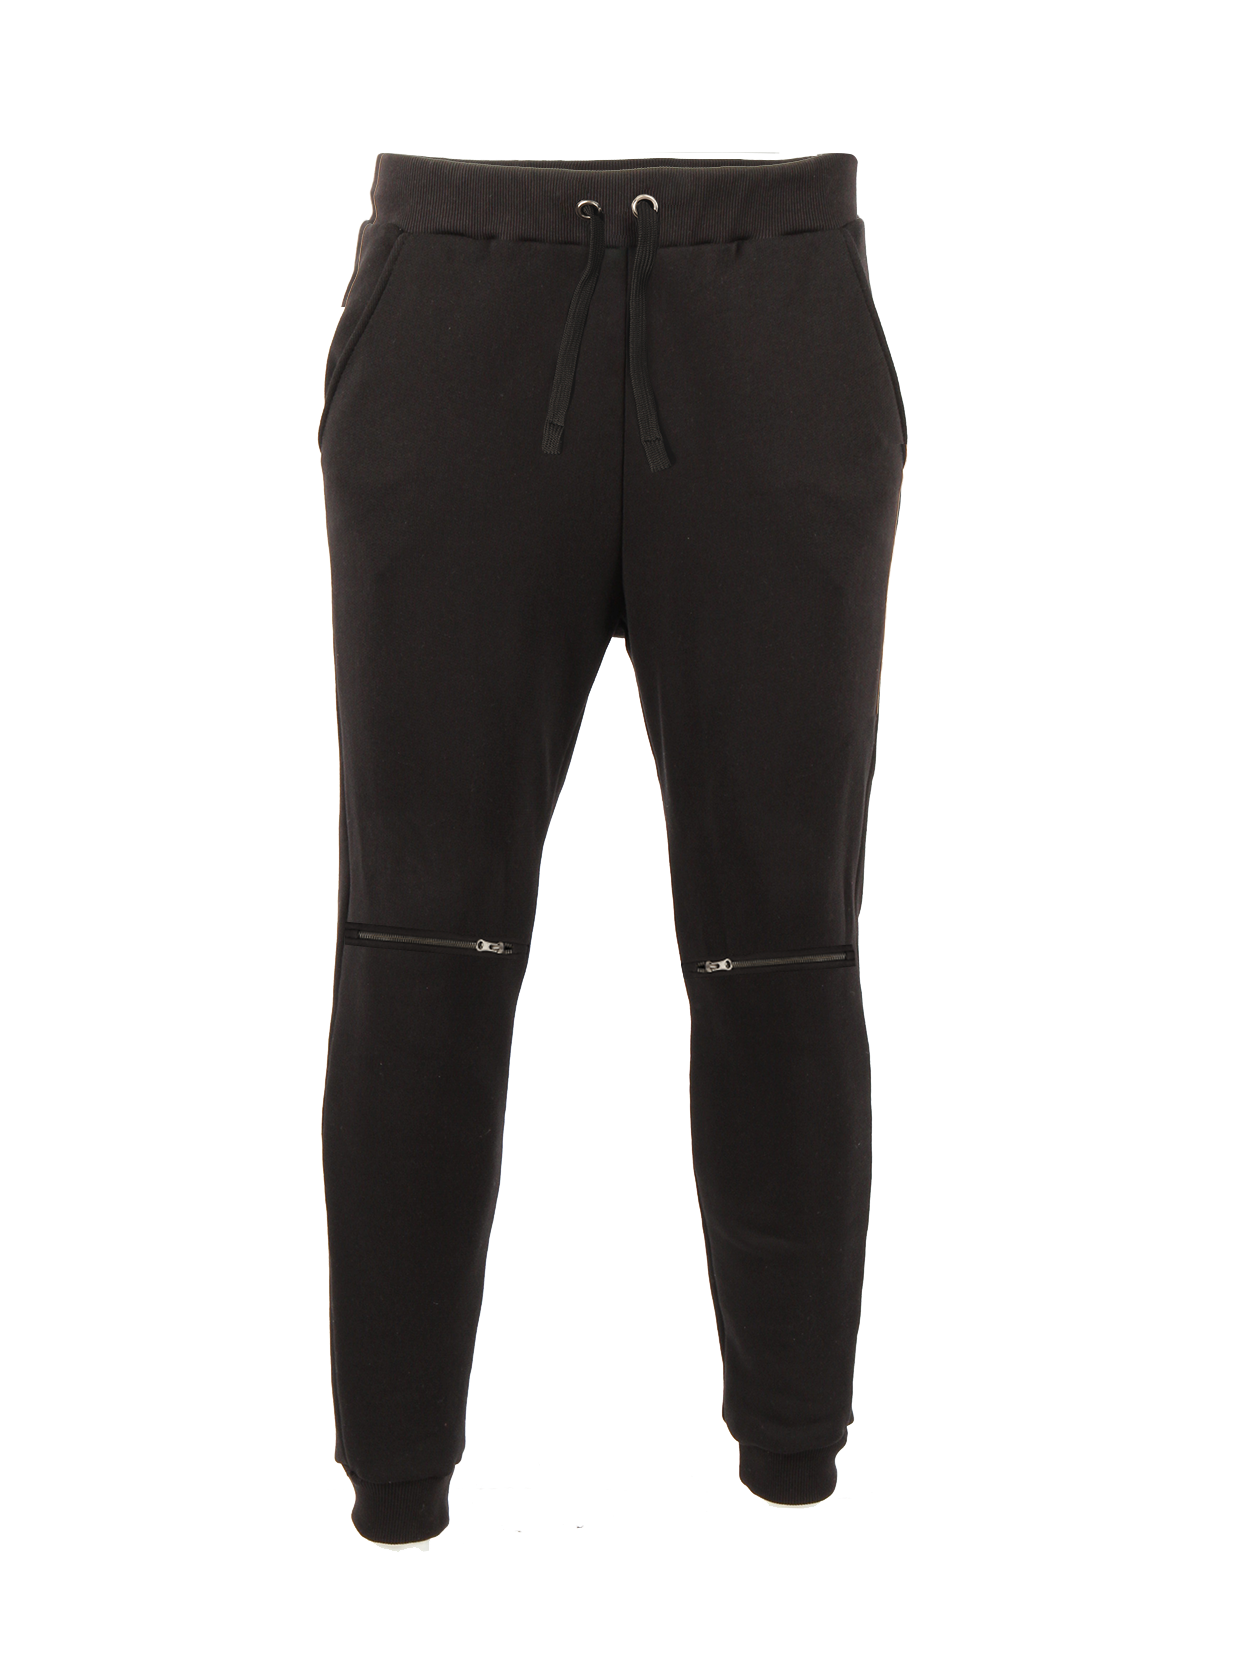 Mens trousers Zip BS от BlackStarWear INT